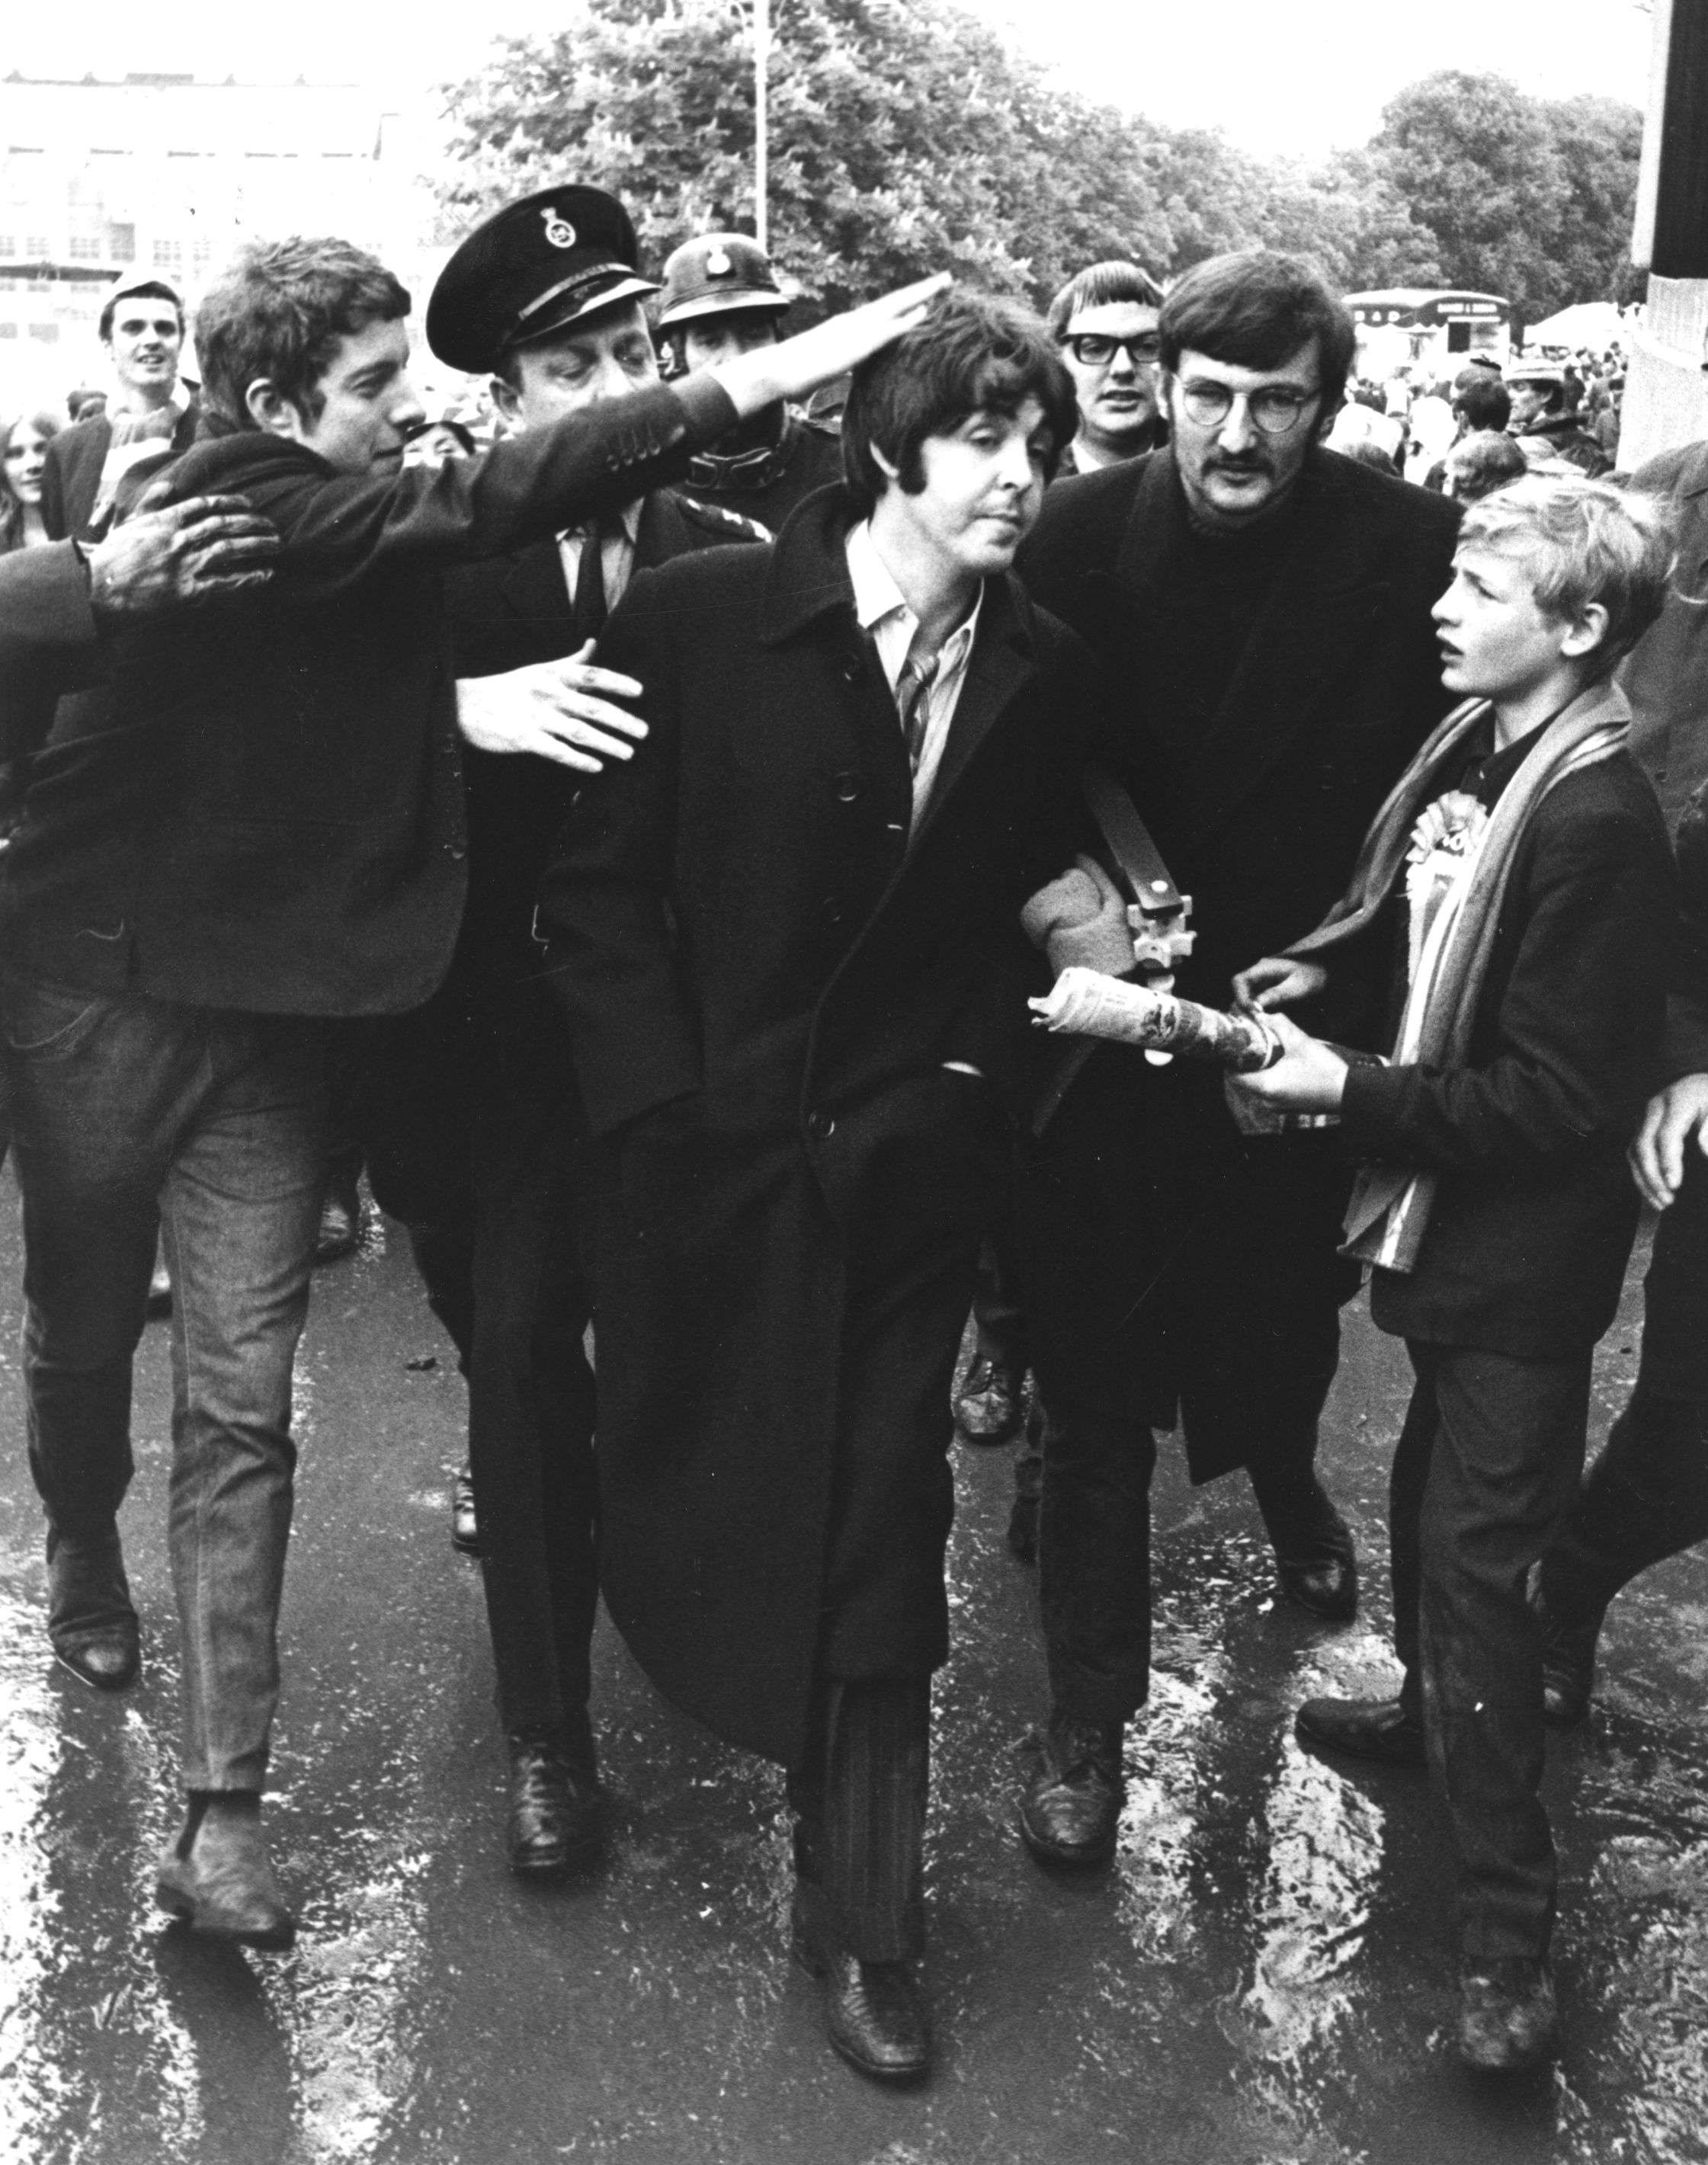 Paul McCartney Arriving At Wembley For The 1968 FA Cup Final Between Everton And West Bromwich Albion